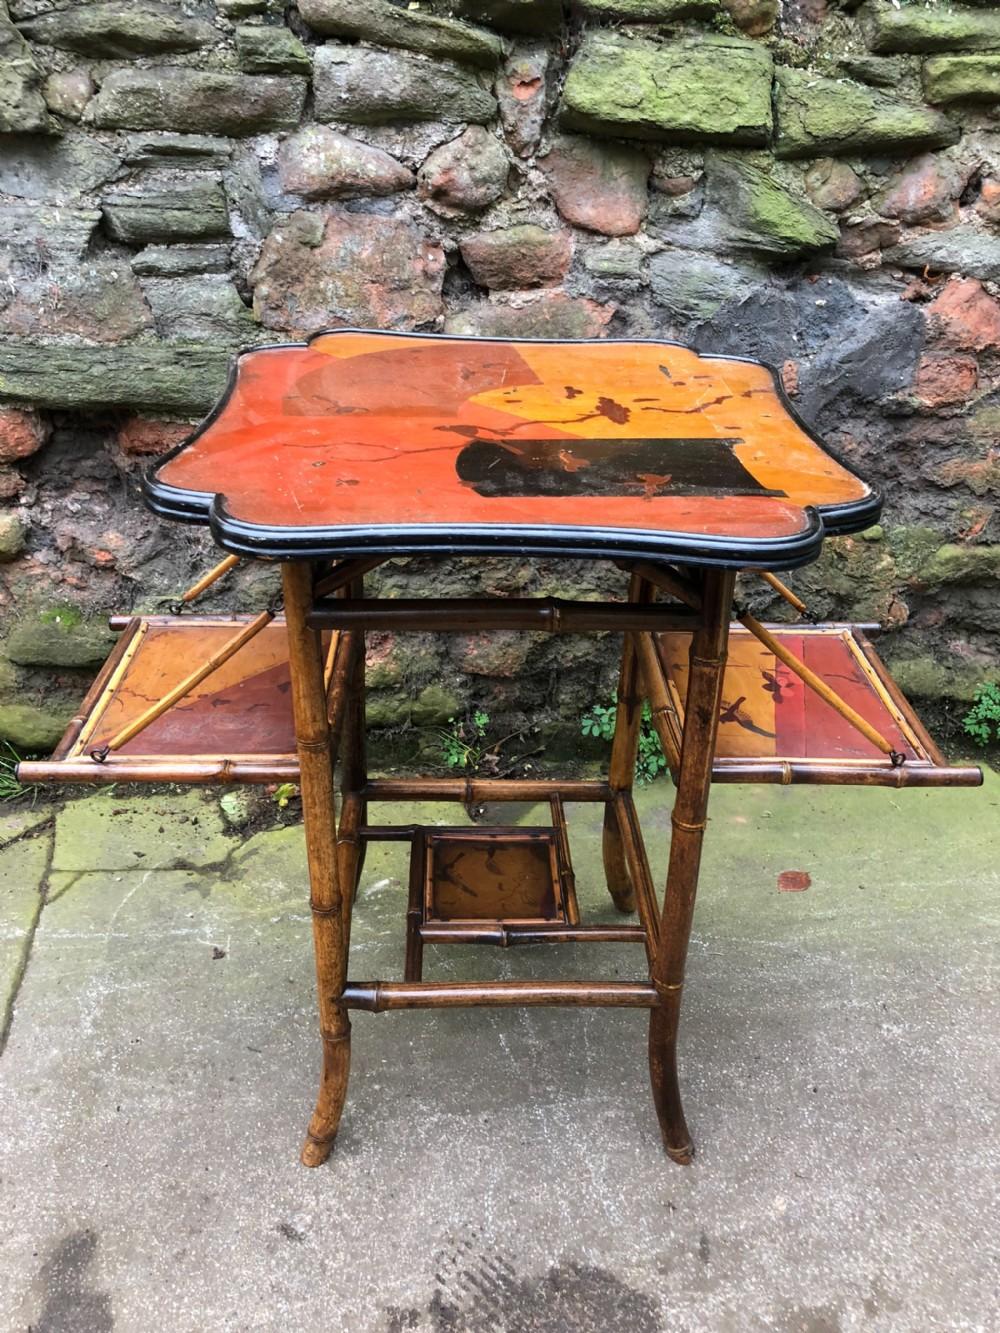 edwardian lacquered bamboo table with two adjustable shelves